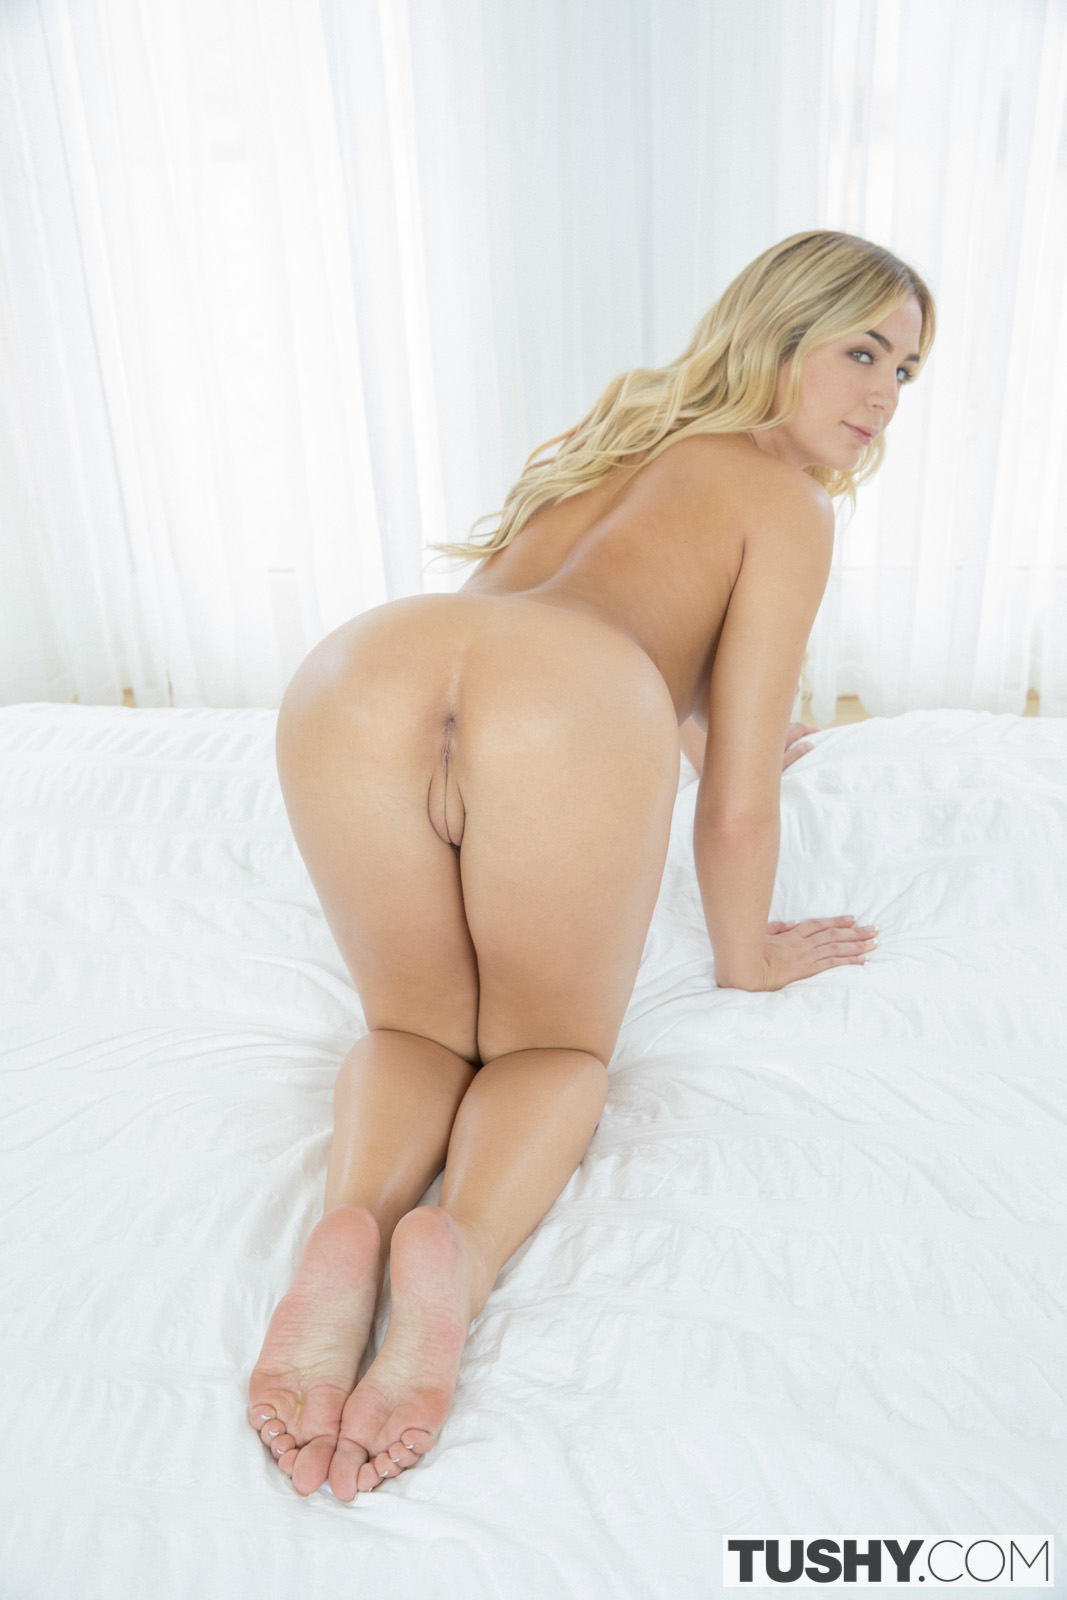 Blonde busty gets old cock sex and cumshot between tits 8